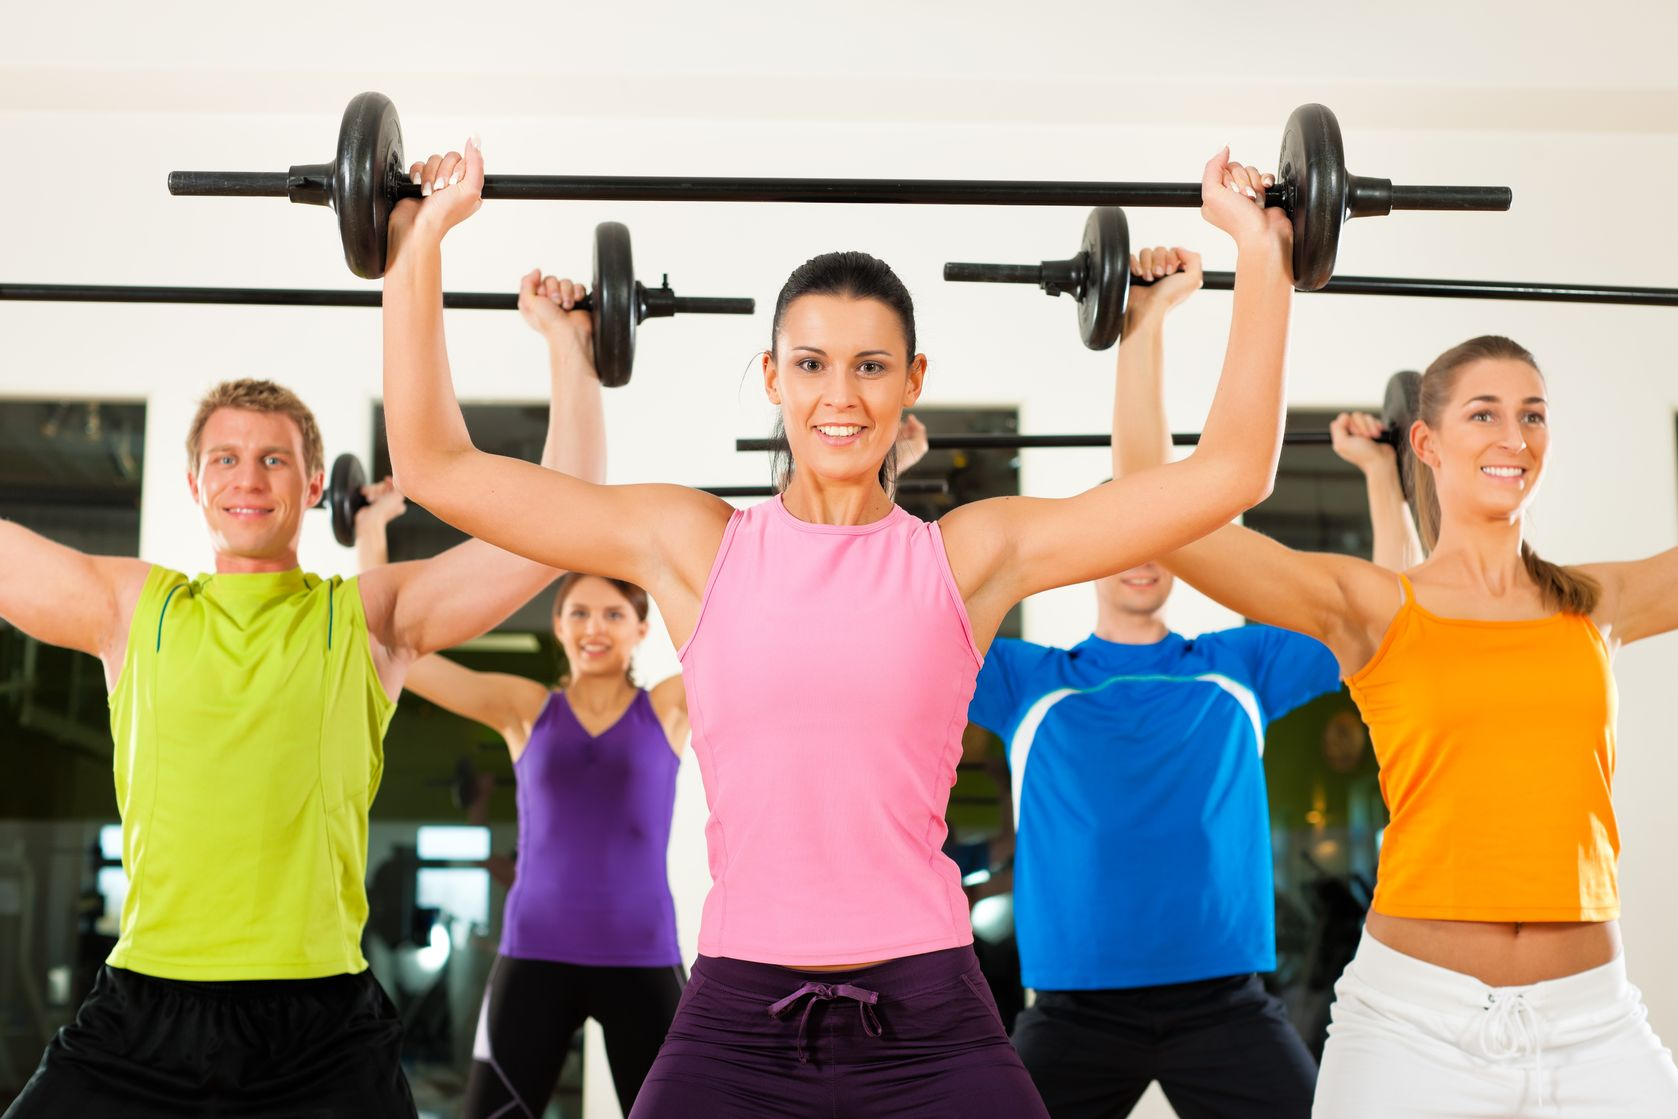 11840891 - group of five people exercising using barbells in gym or fitness club to gain strength and fitness